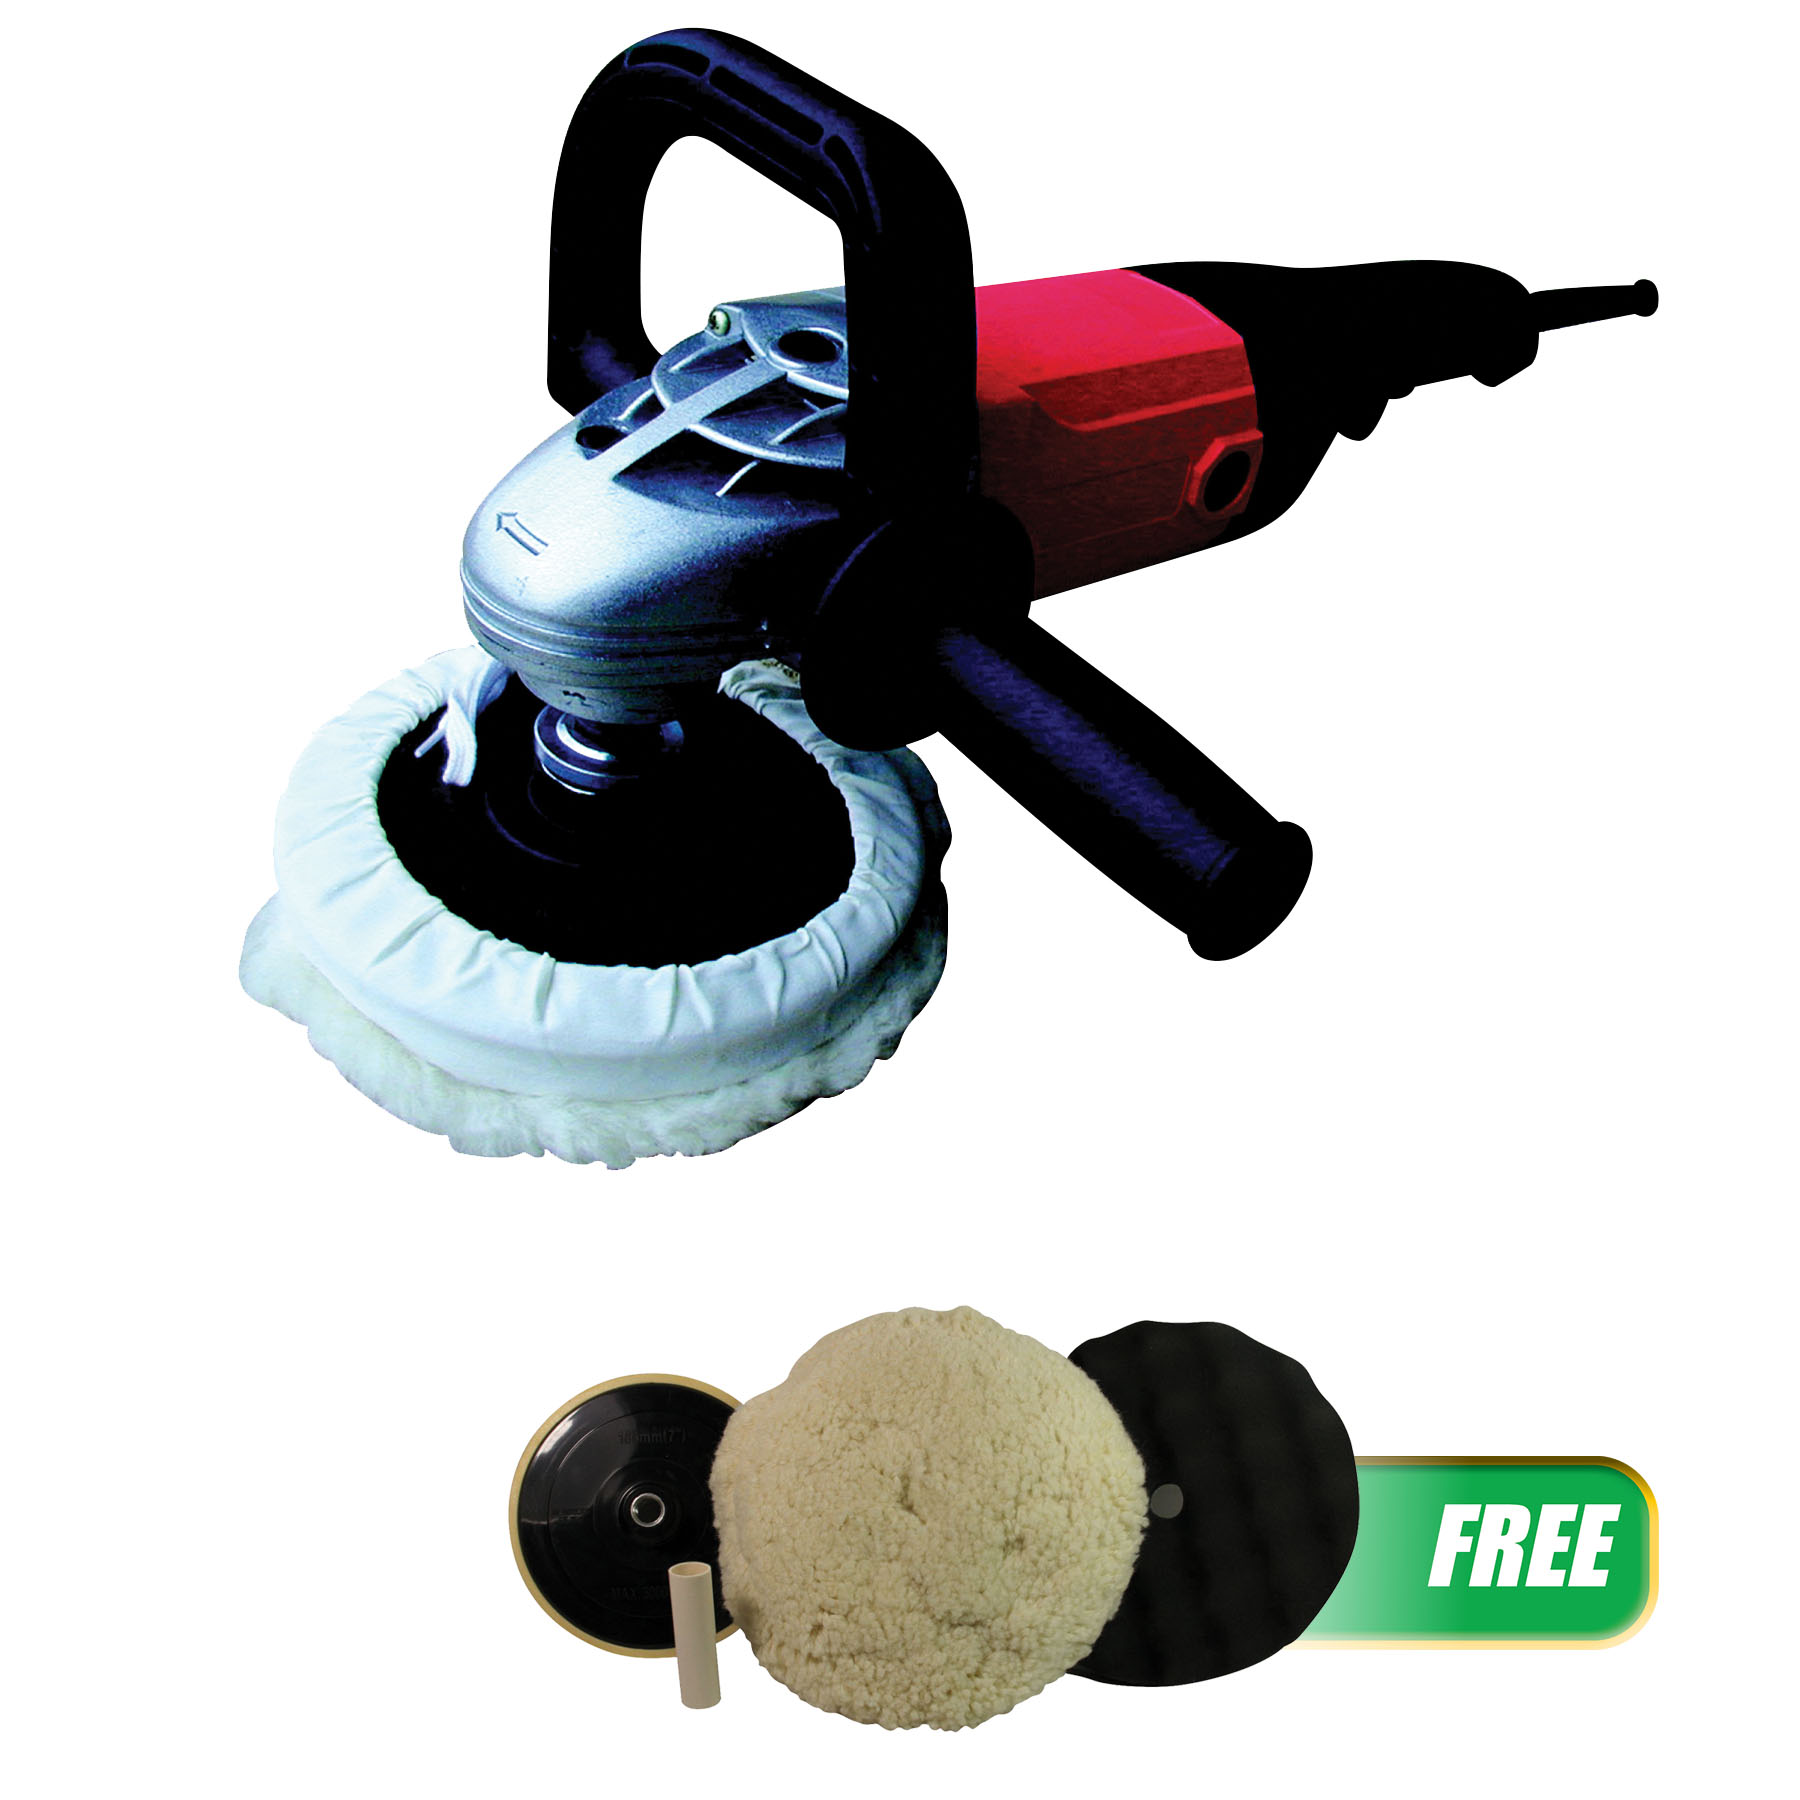 """ATD Tools 7"""" Shop Polisher with Soft Start with FREE Pad Kit"""